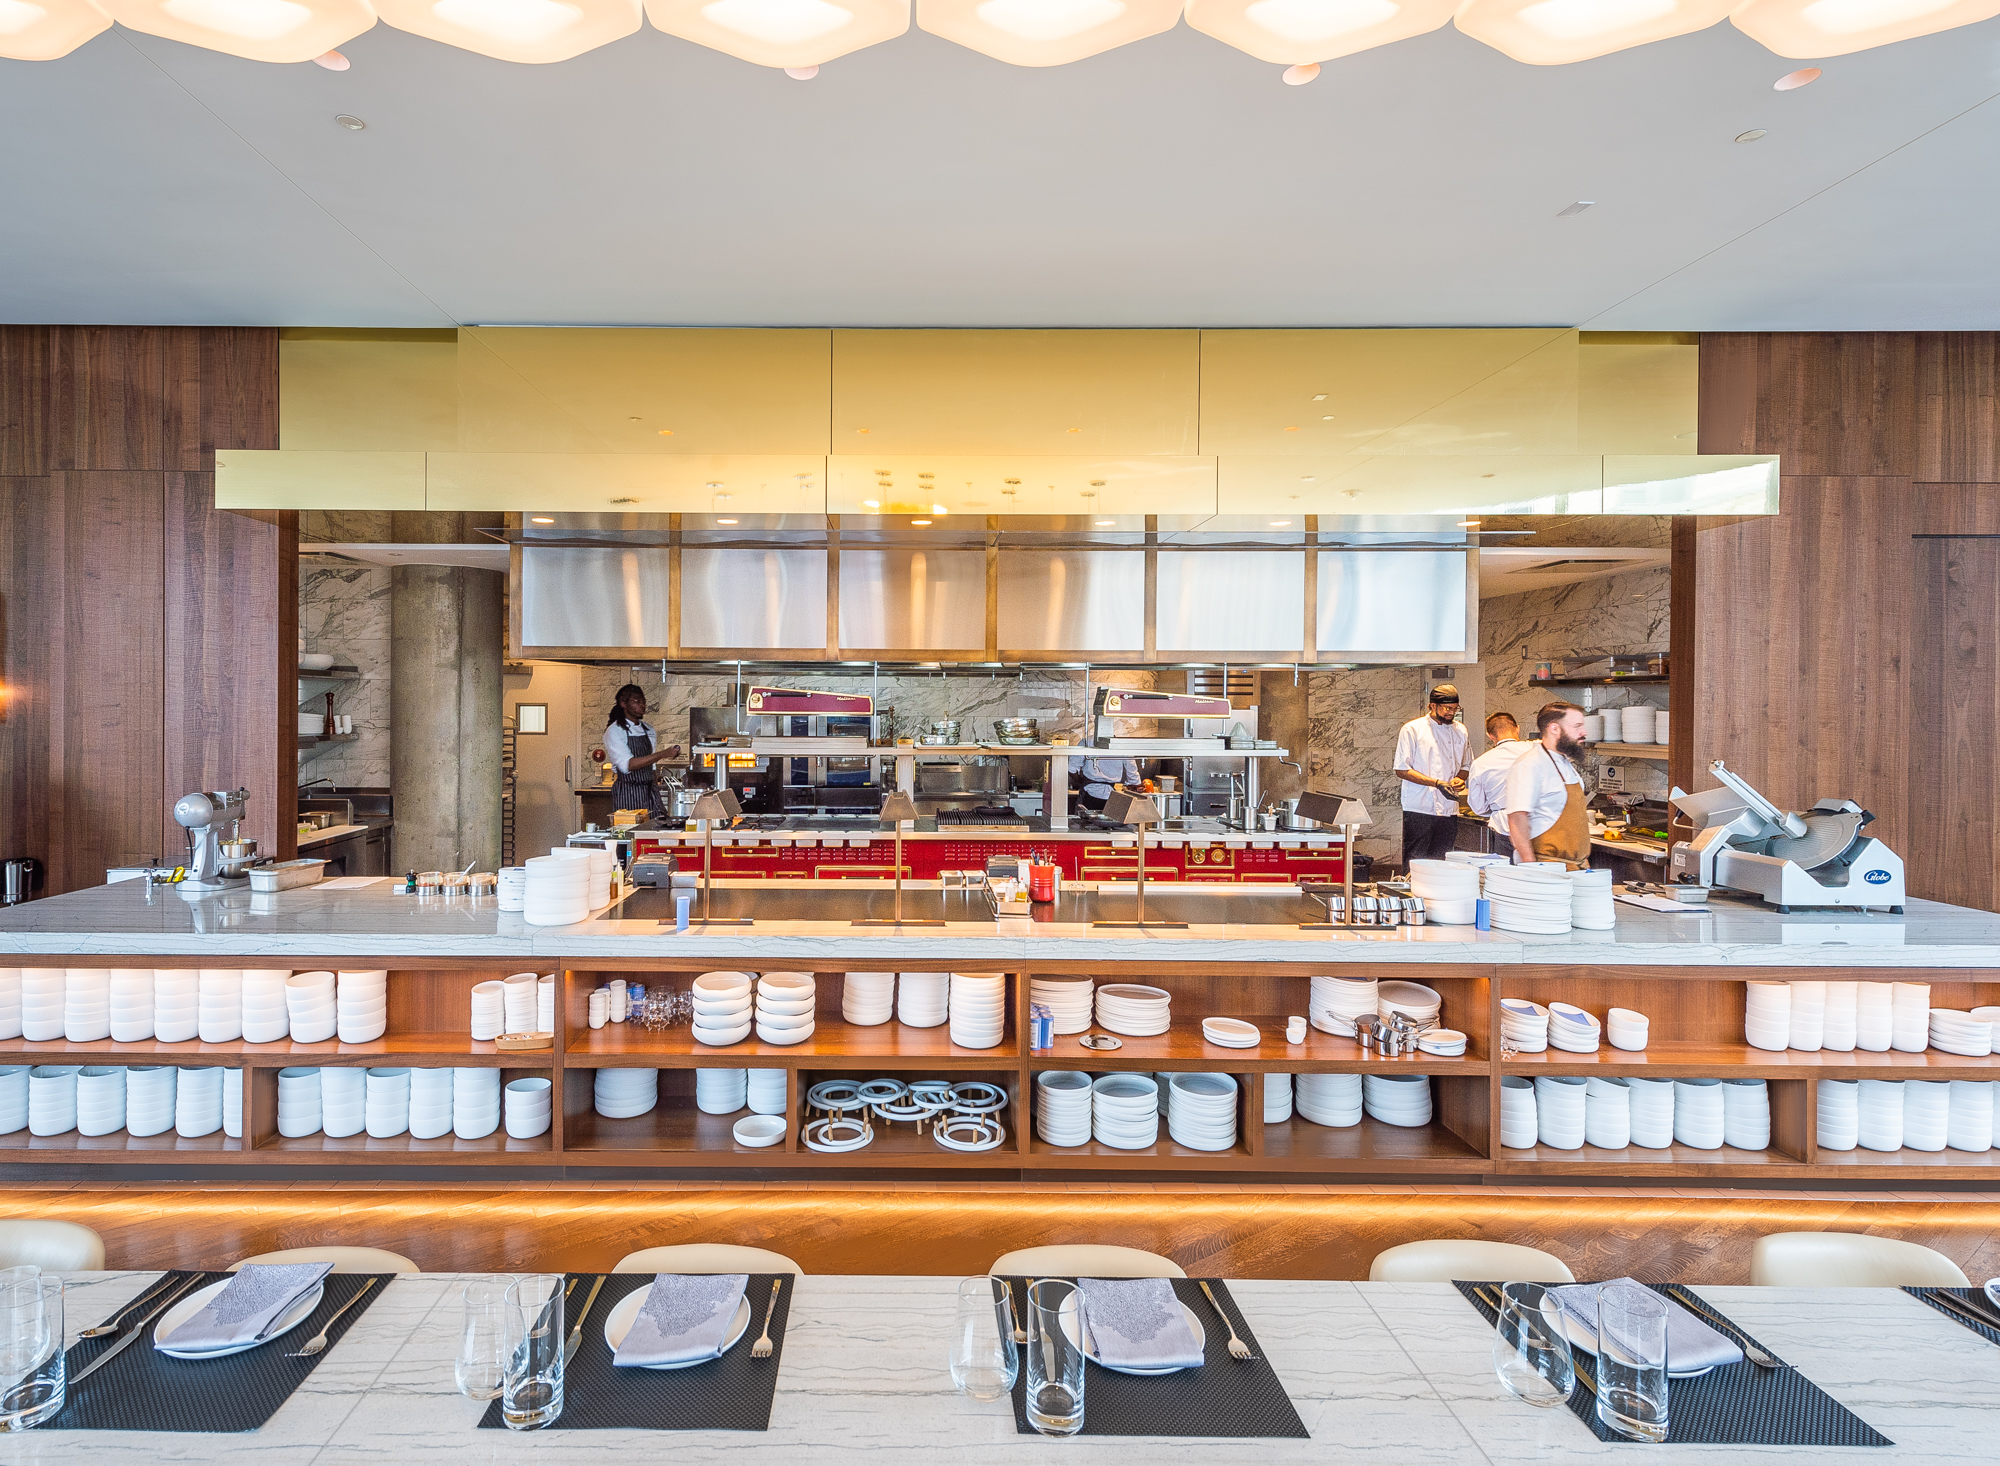 Estuary Restaurant Opens in CityCenterDC With a Theatrical Open Kitchen